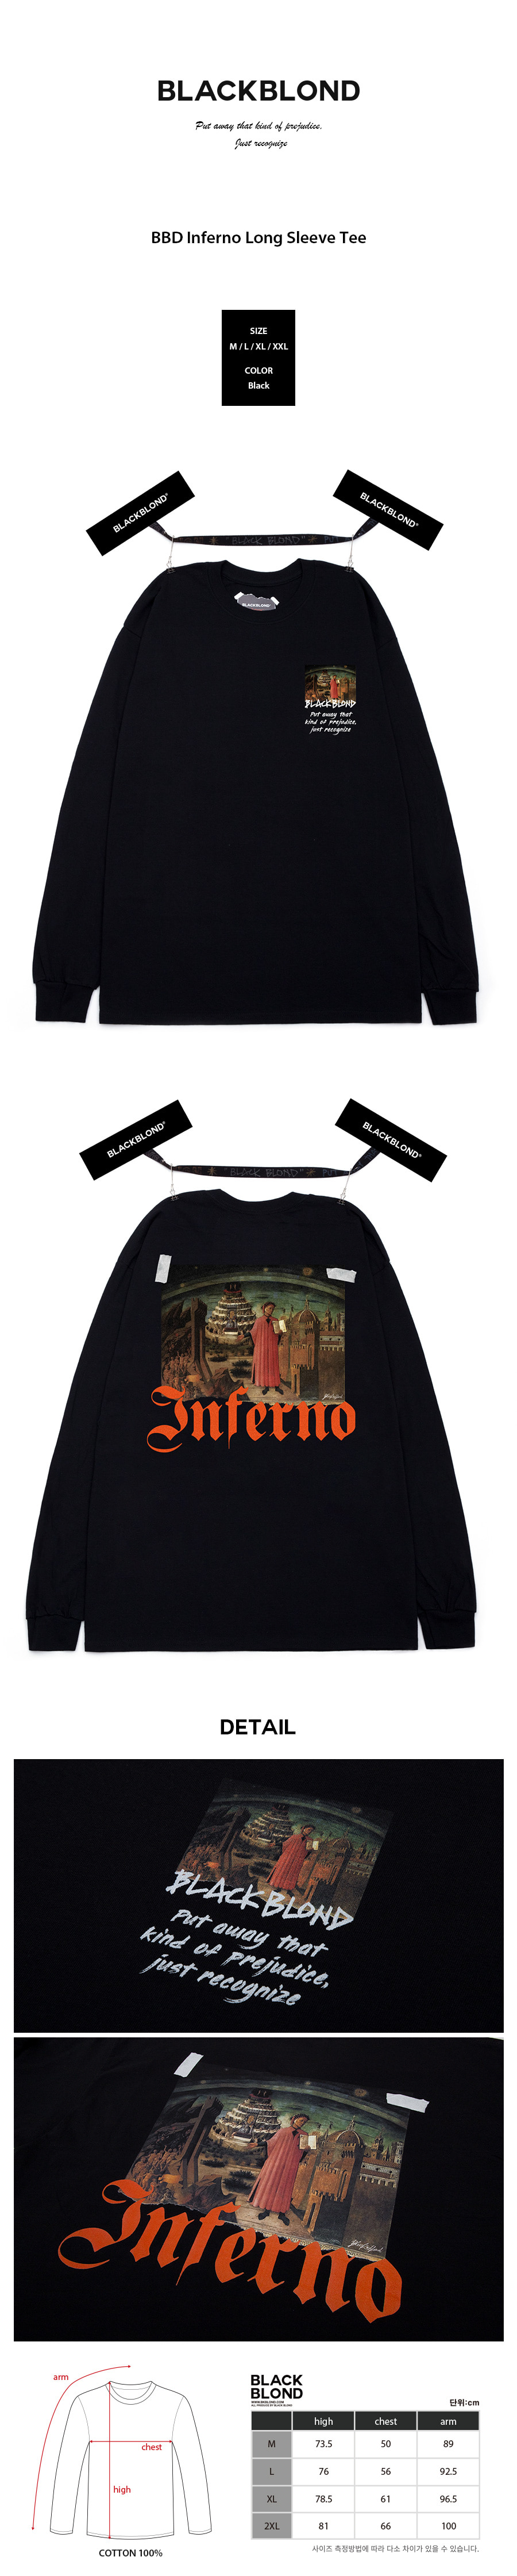 BLACKBLOND - BBD Inferno Long Sleeve Tee (Black)